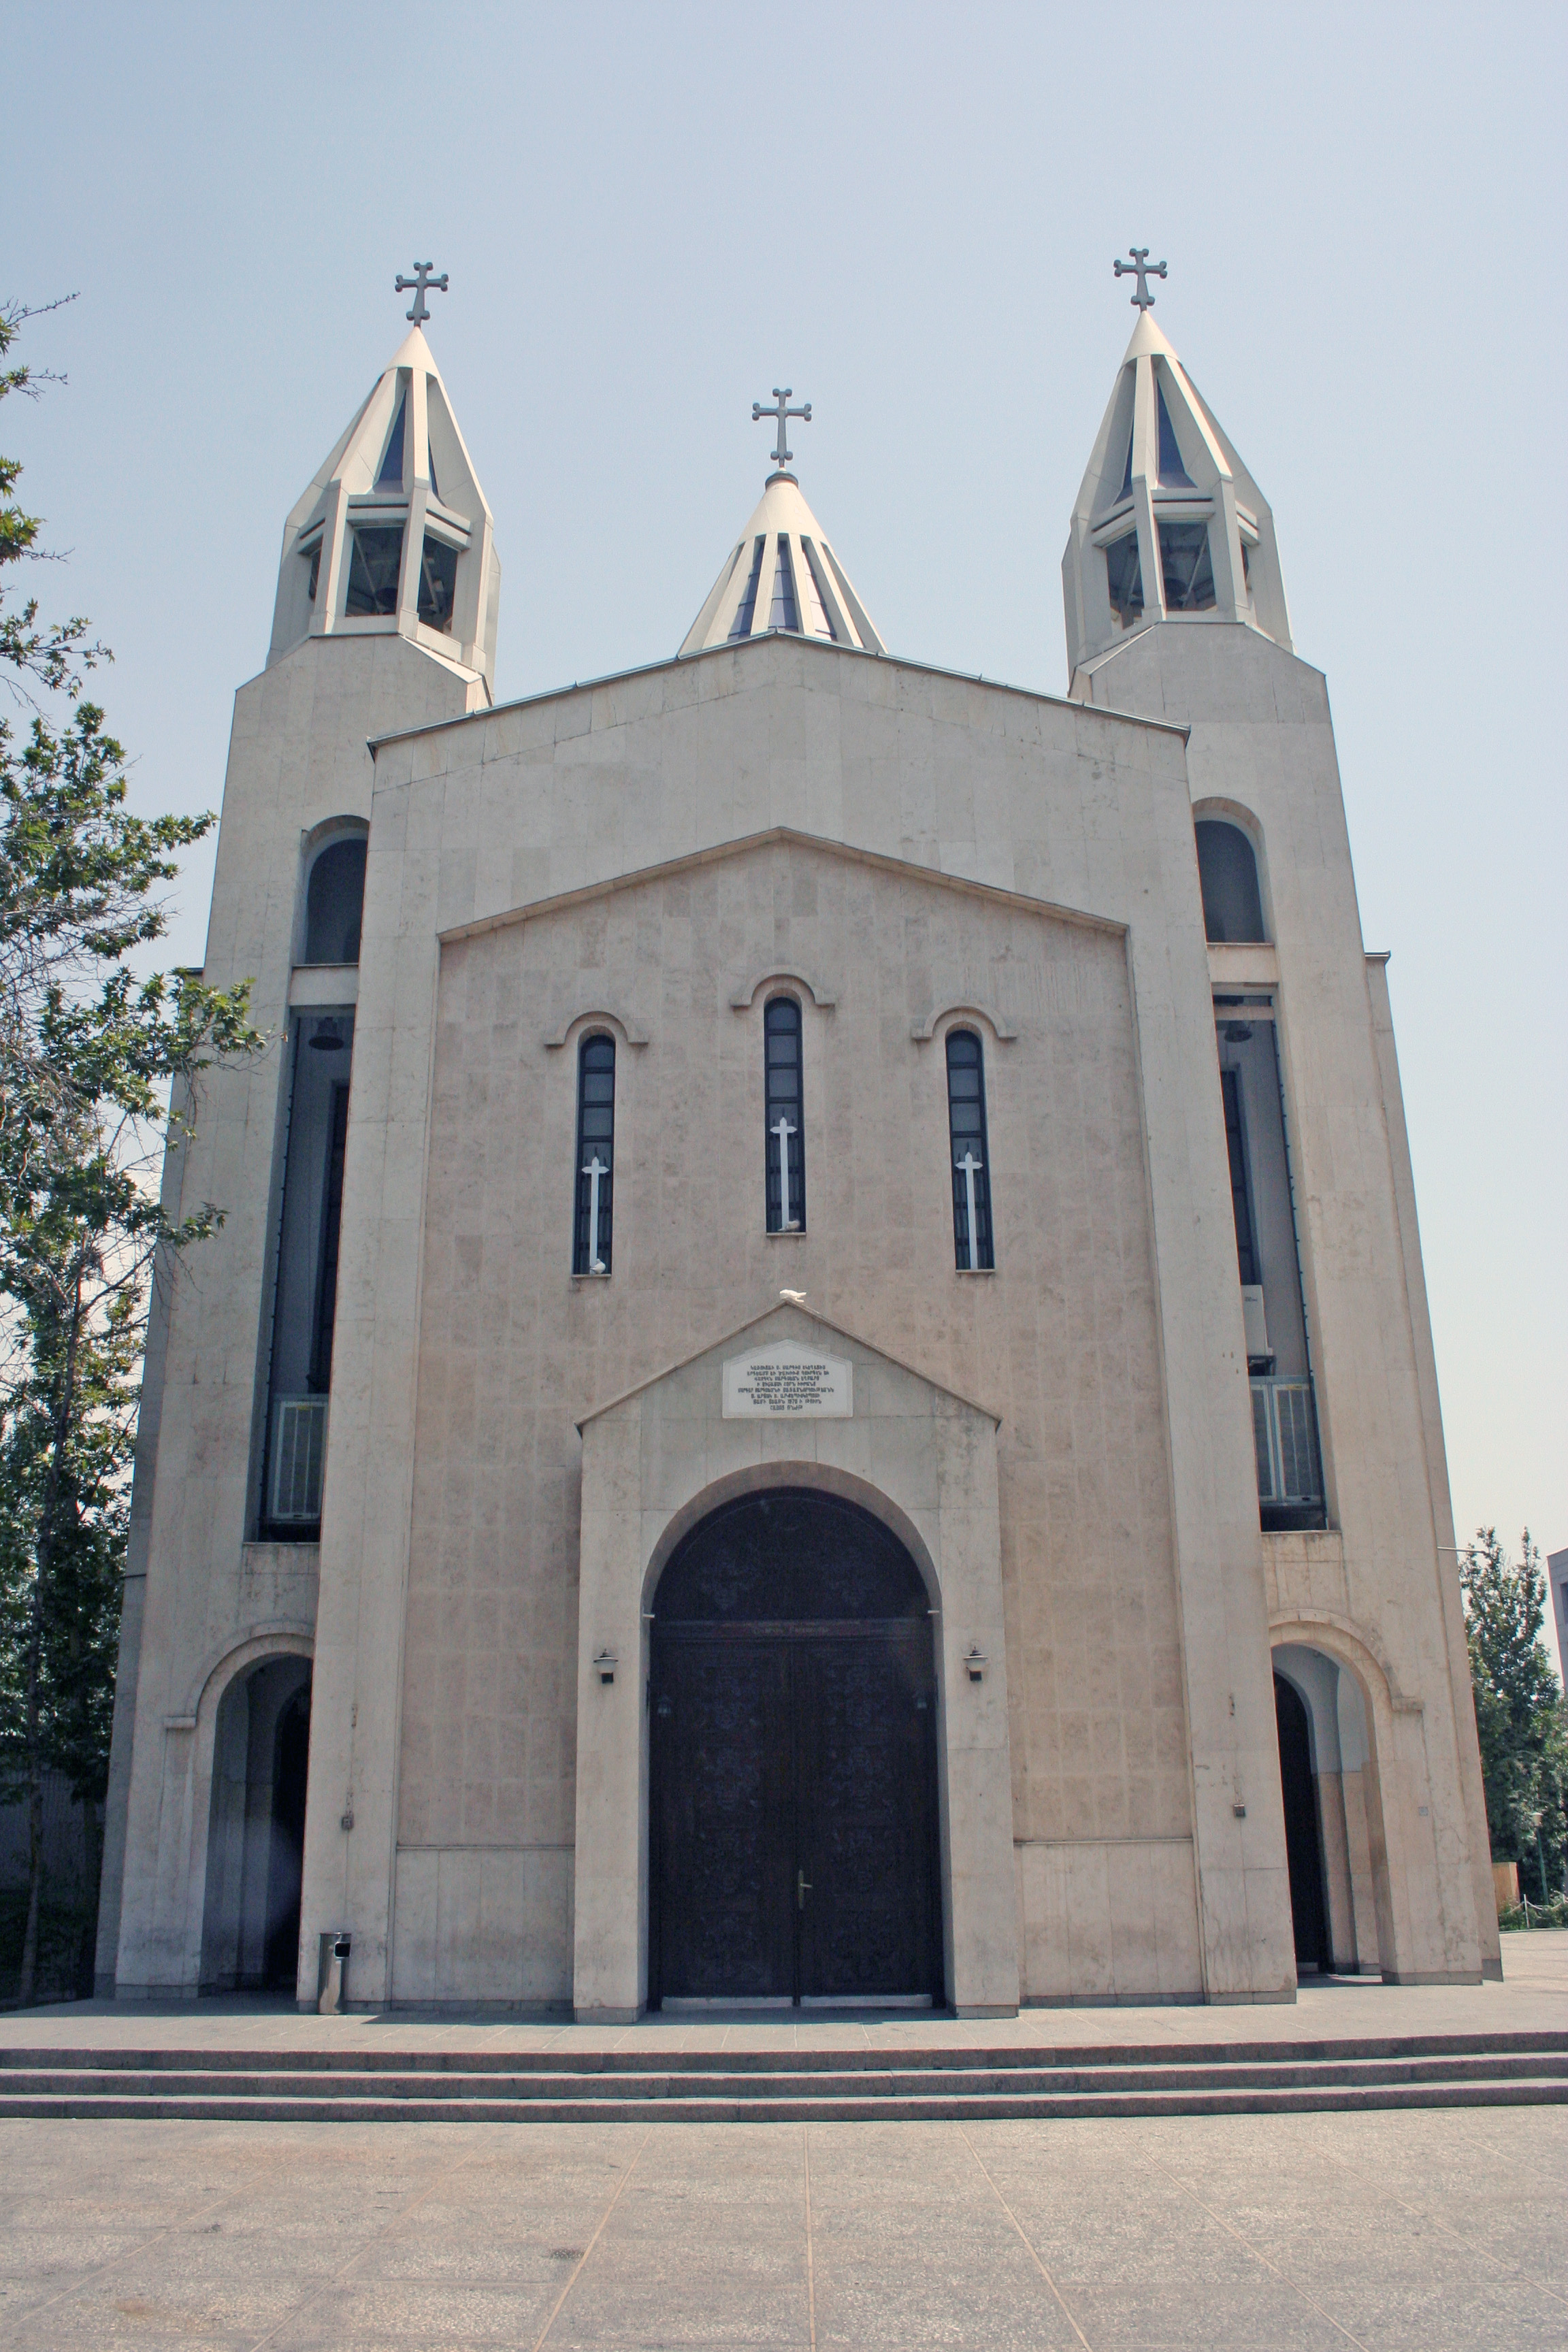 St. Sarkis Cathedral in Tehran.